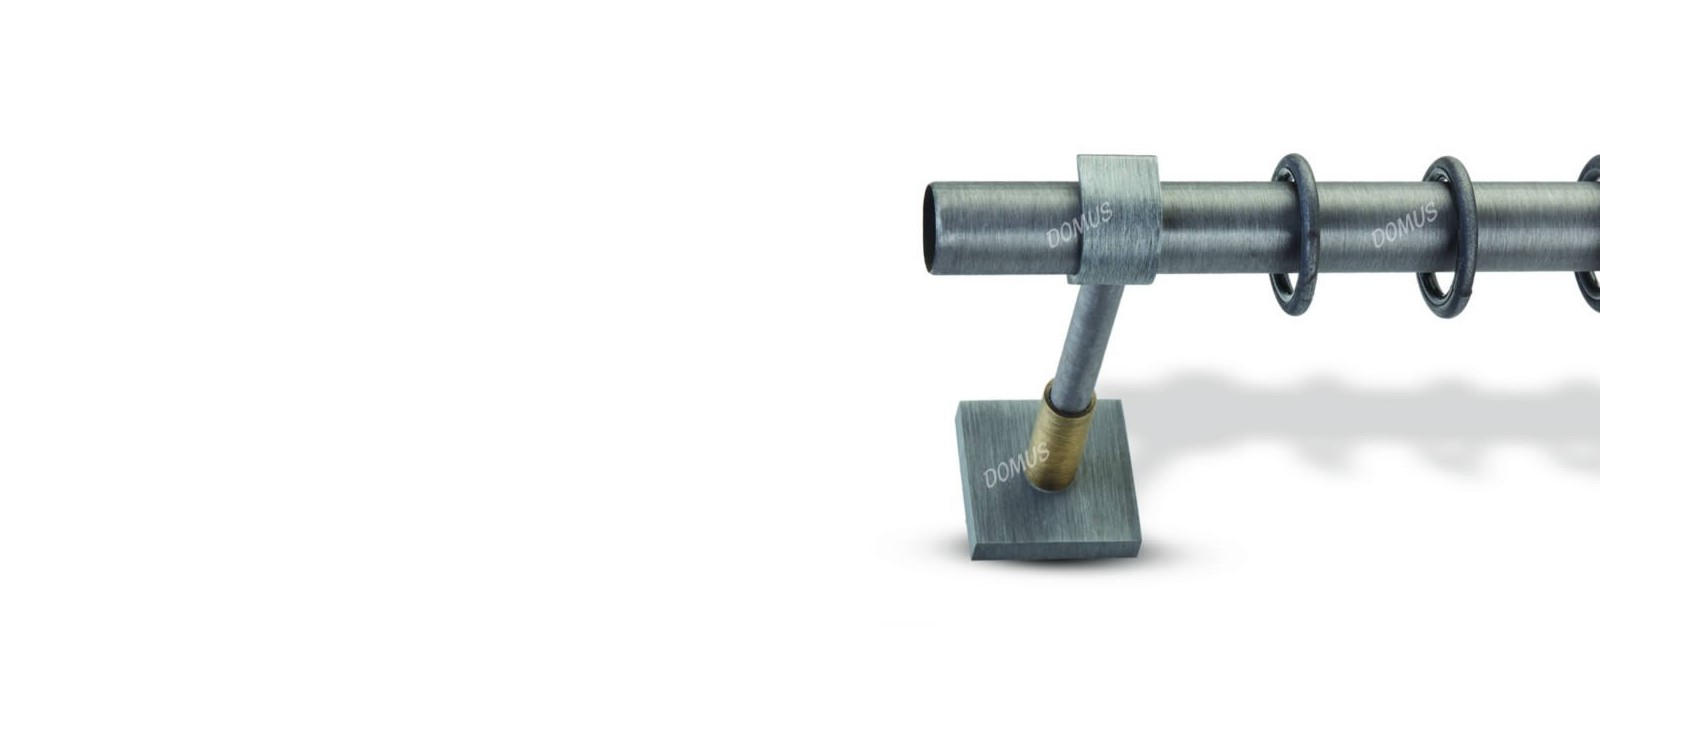 industrial-set-without-finial-f25